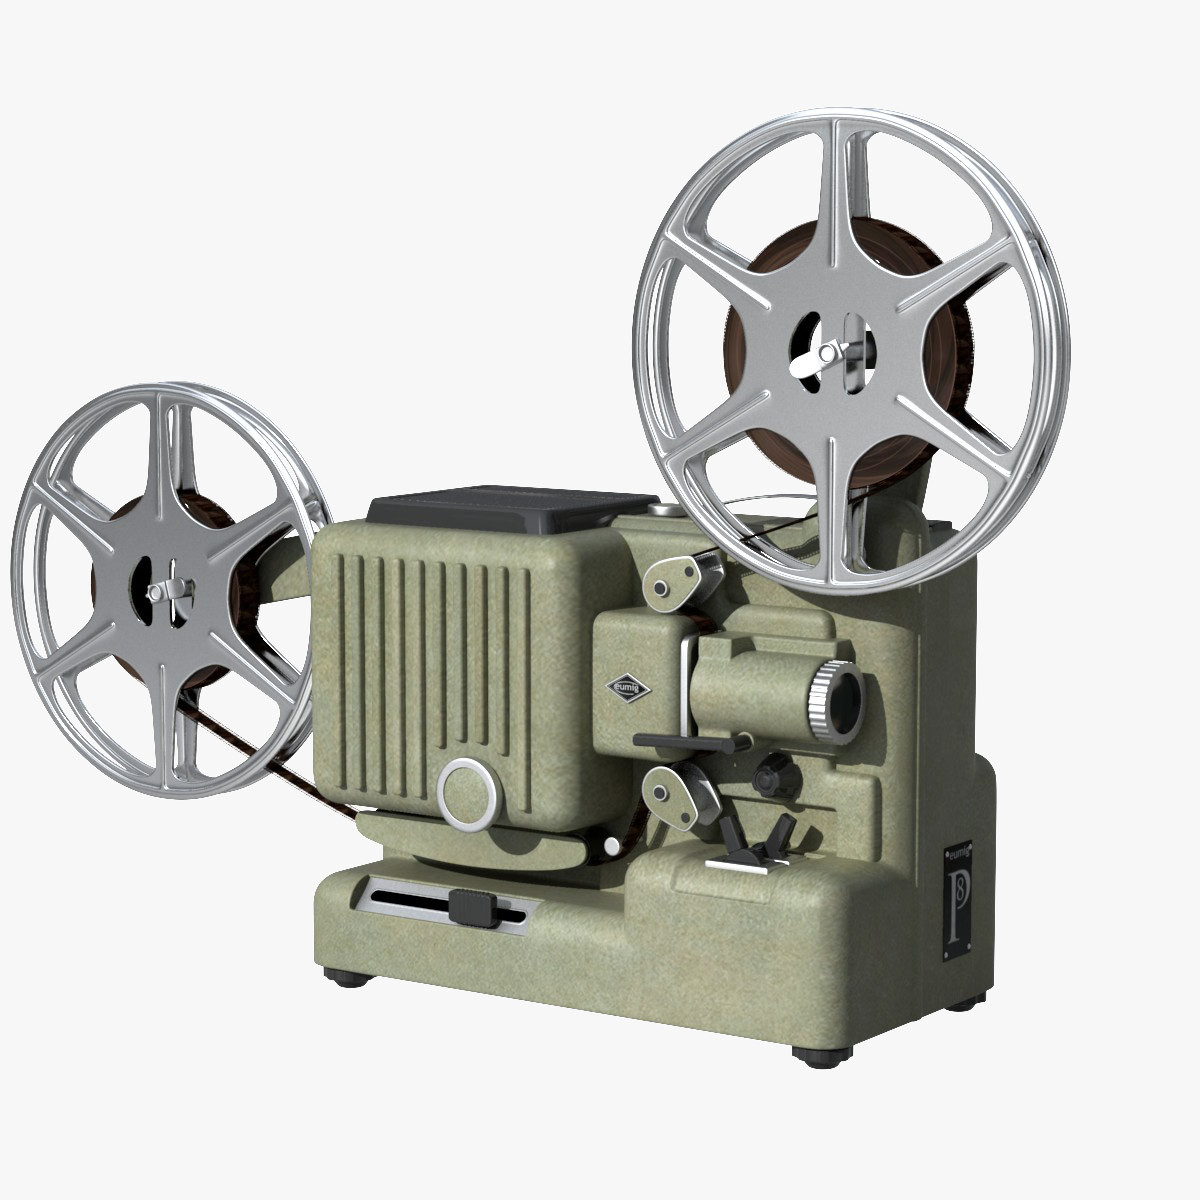 projector eumig movie 3d film reel 3ds projectors turbosquid theater classic hq movies poston found ebal studios models camera cameras